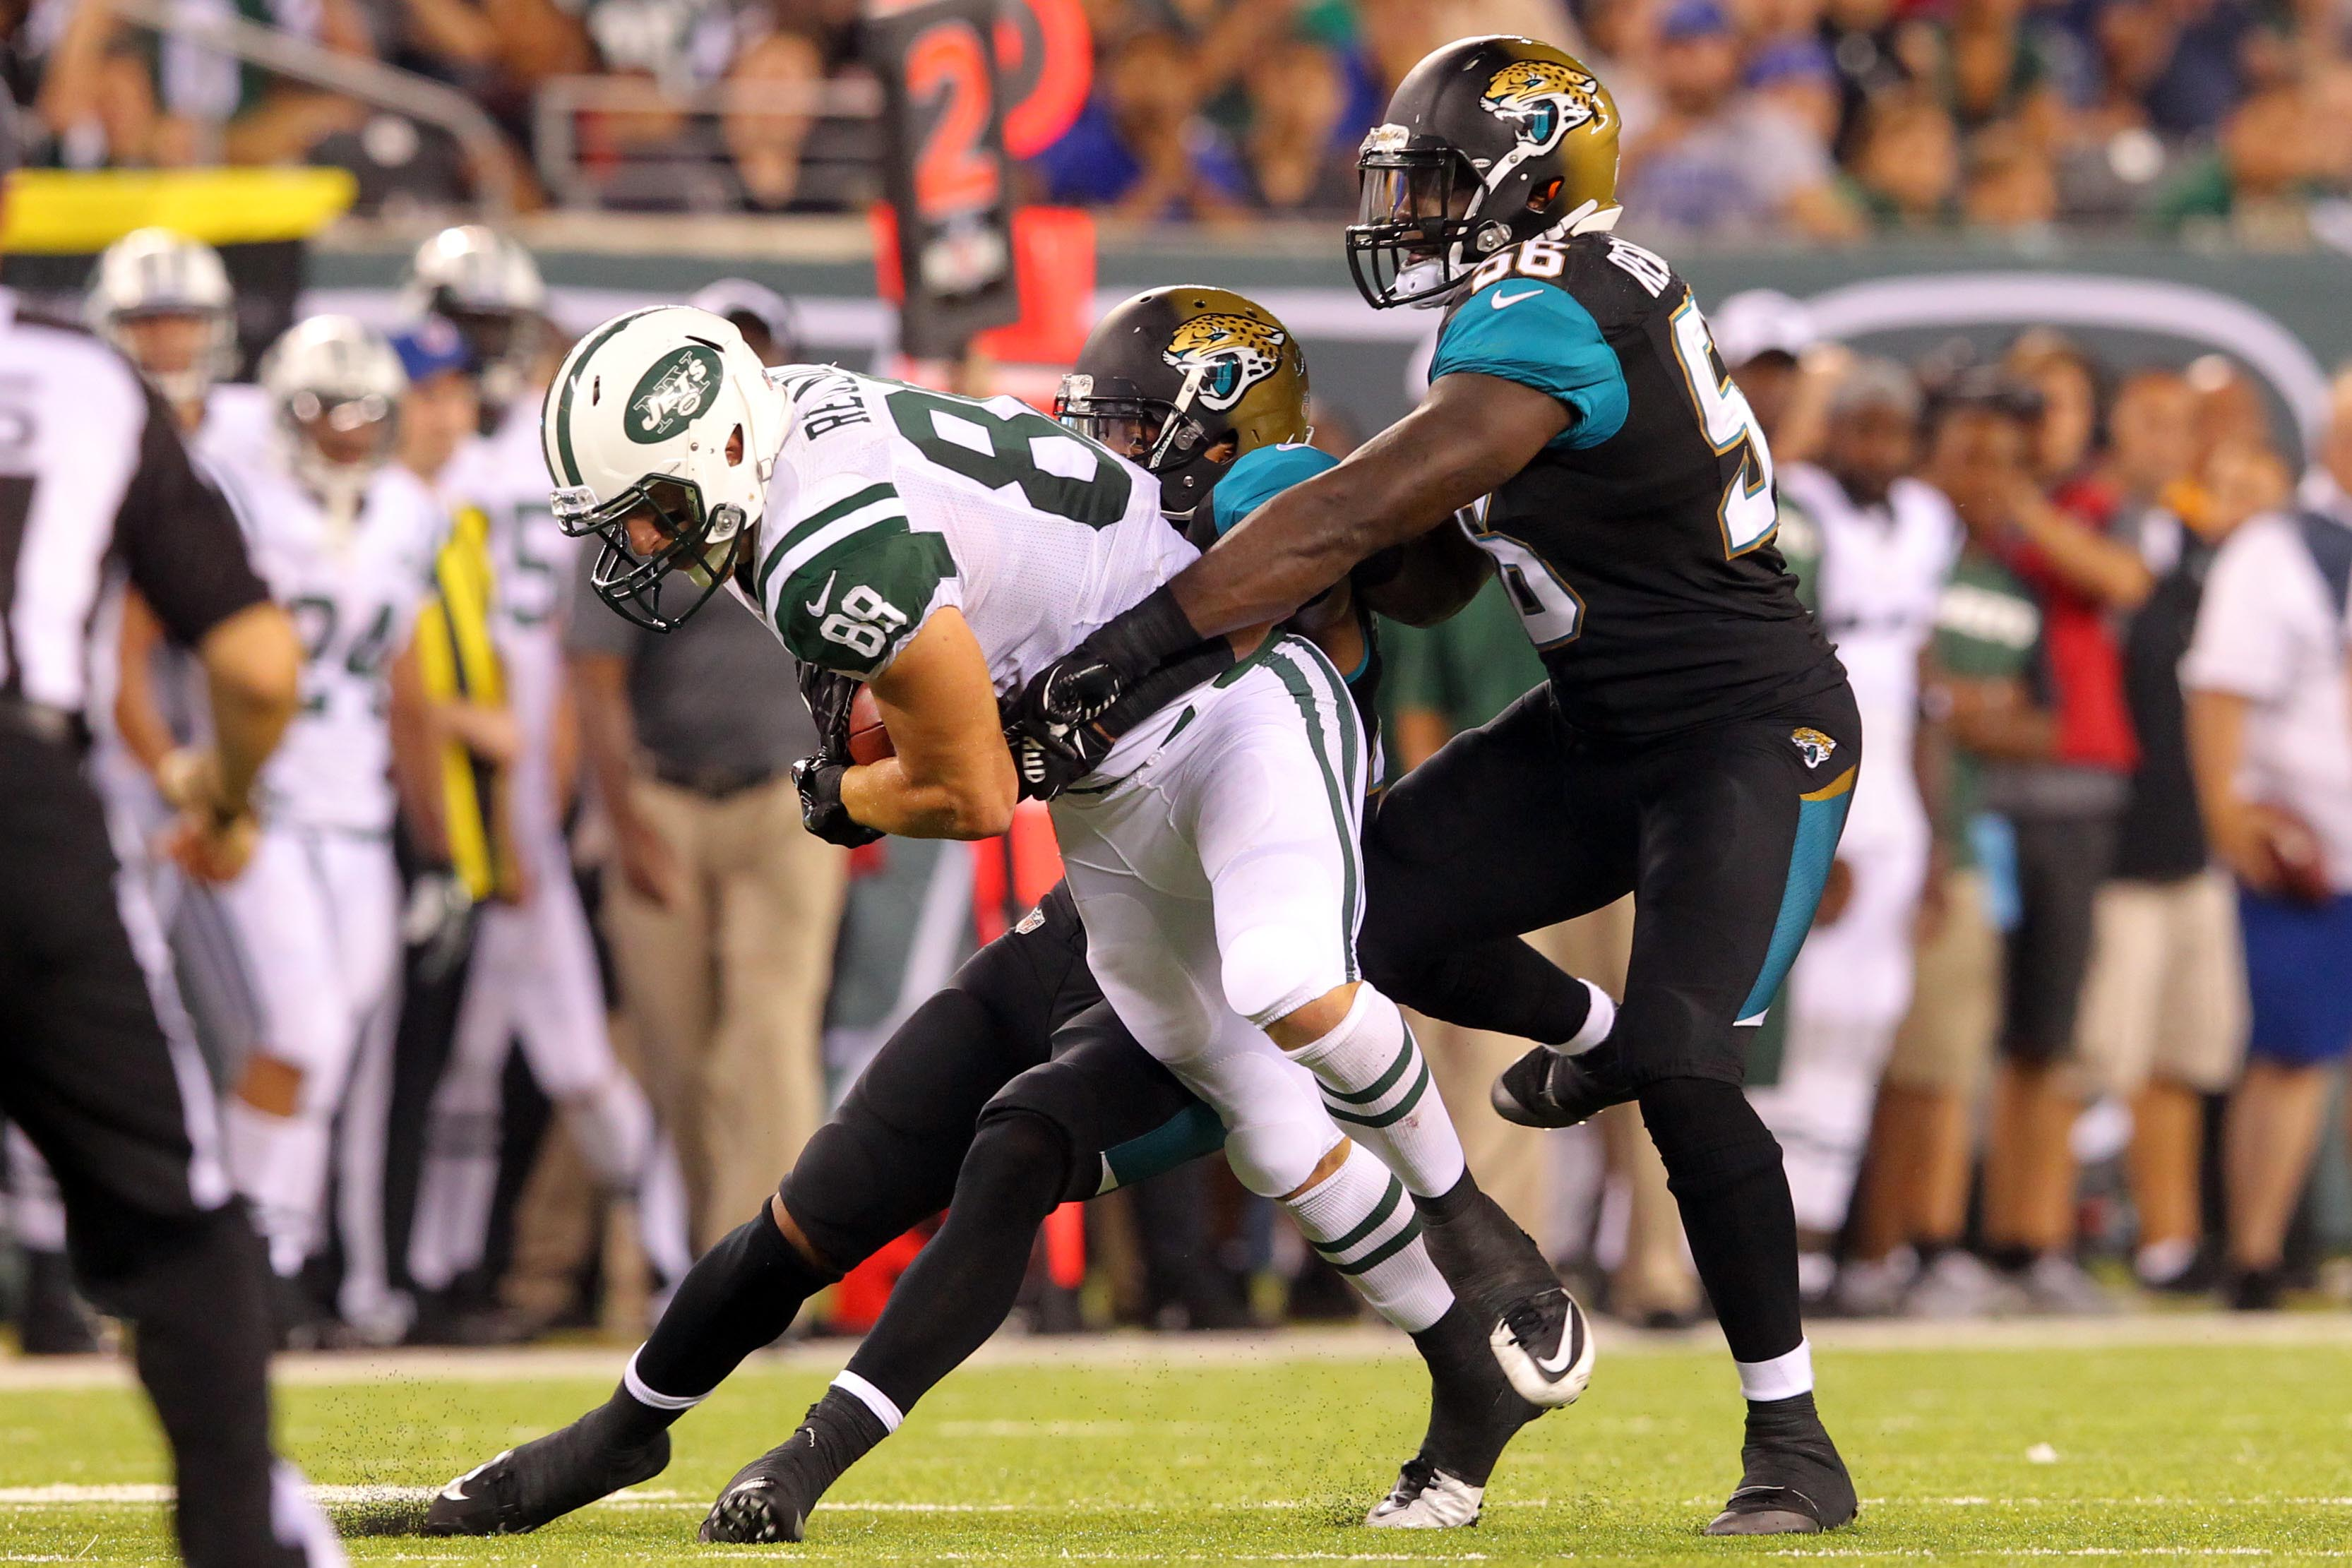 7388030-nfl-preseason-jacksonville-jaguars-at-new-york-jets-1